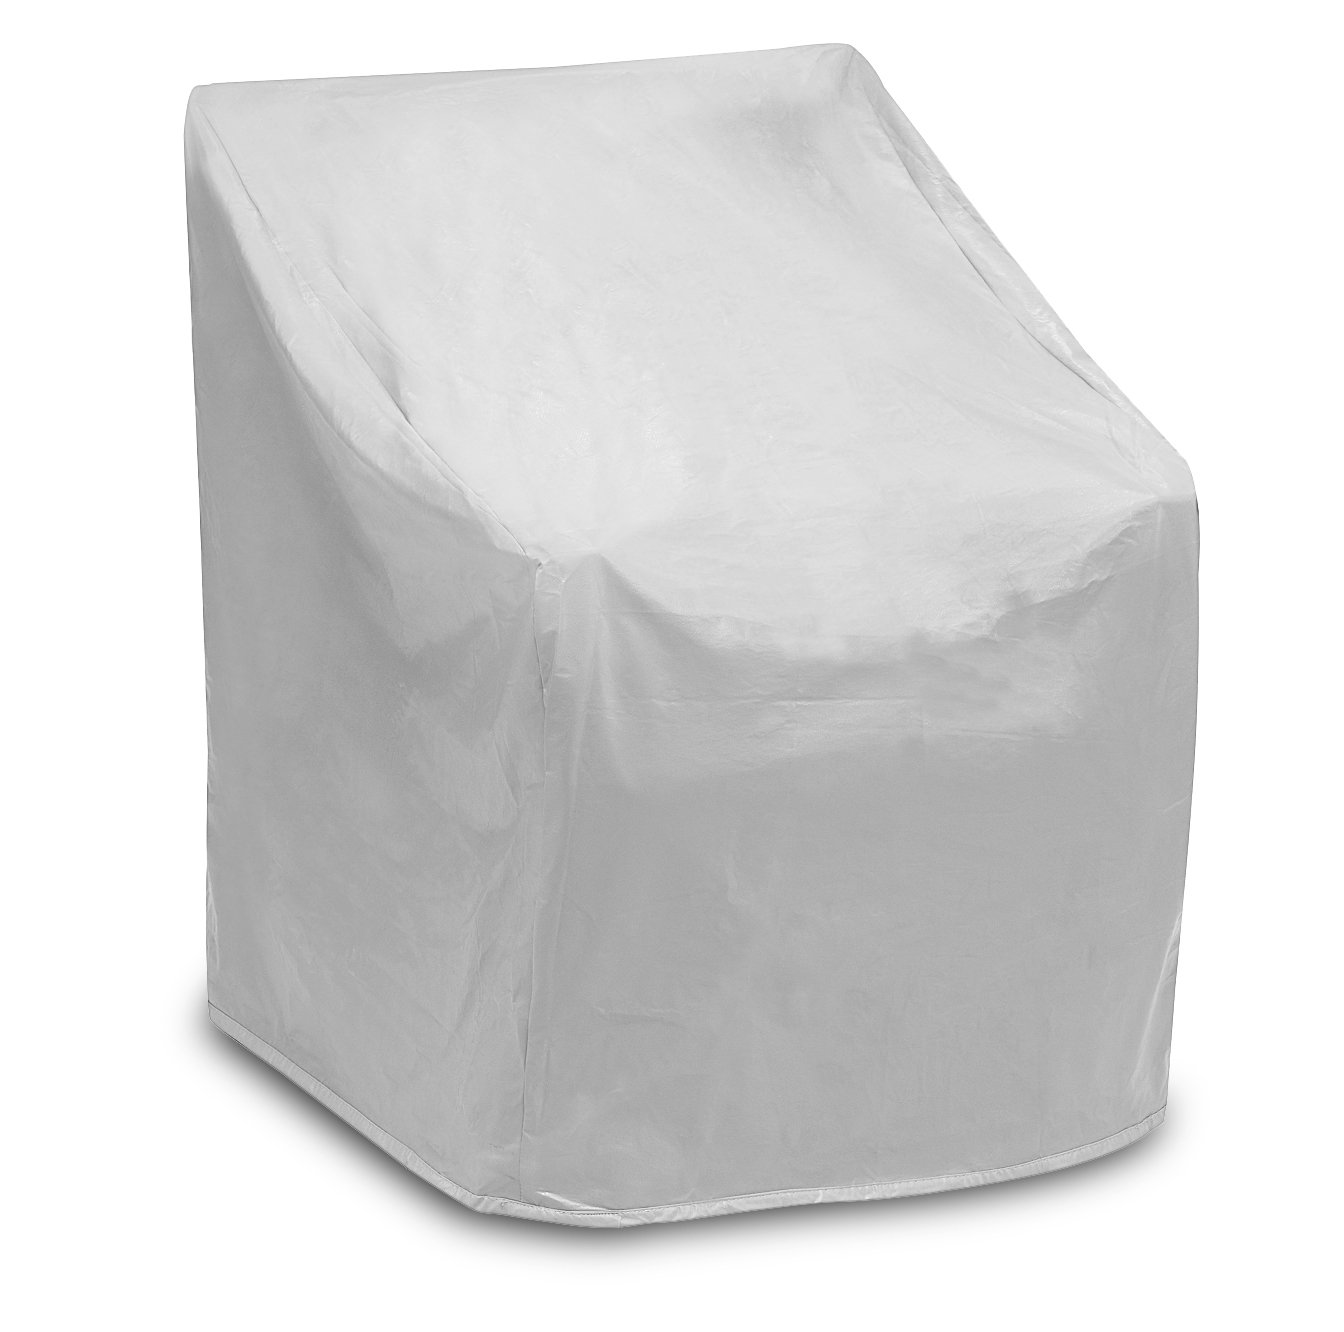 Awesome Amazon.com : Protective Covers Weatherproof Wicker Chair Cover, Regular,  Gray : Patio Chair Covers : Garden U0026 Outdoor Part 31